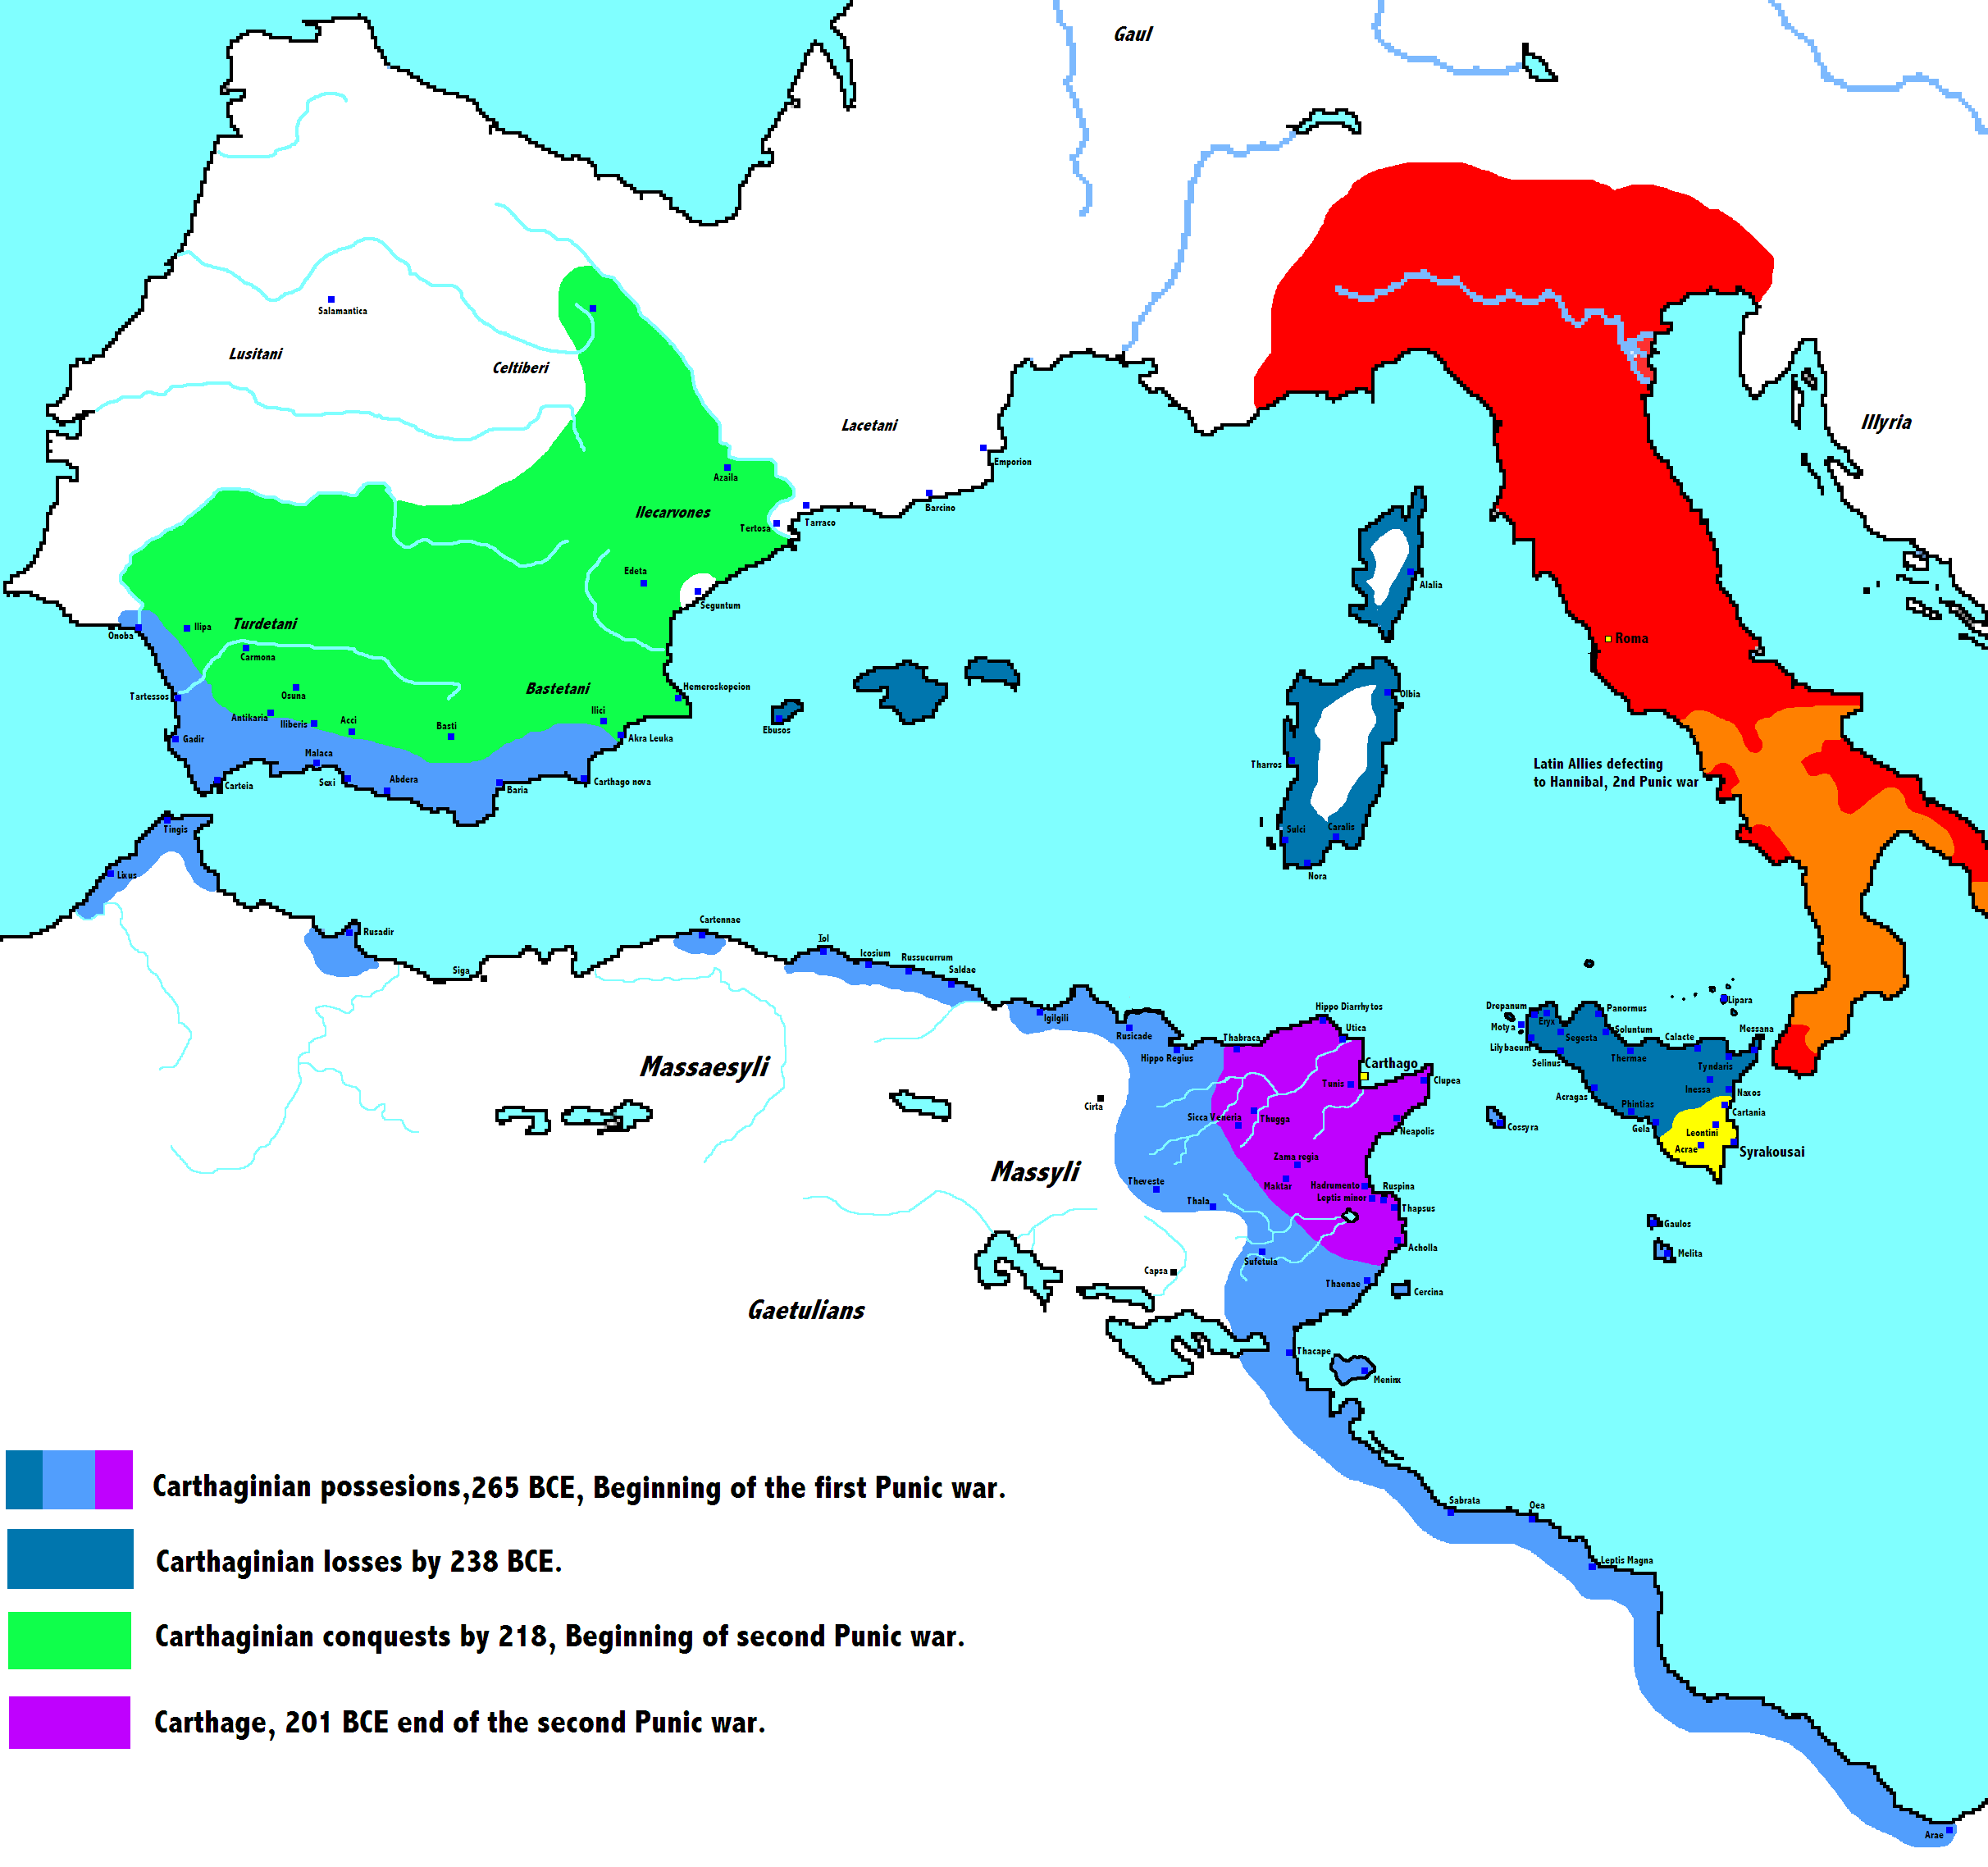 a review of the punic wars The punic wars were a series of conflicts fought between the forces of ancient carthage and rome between 264 bce and 146 bce the name punic comes from the word phoenician (phoinix in the greek, poenus follow us: editorial review.